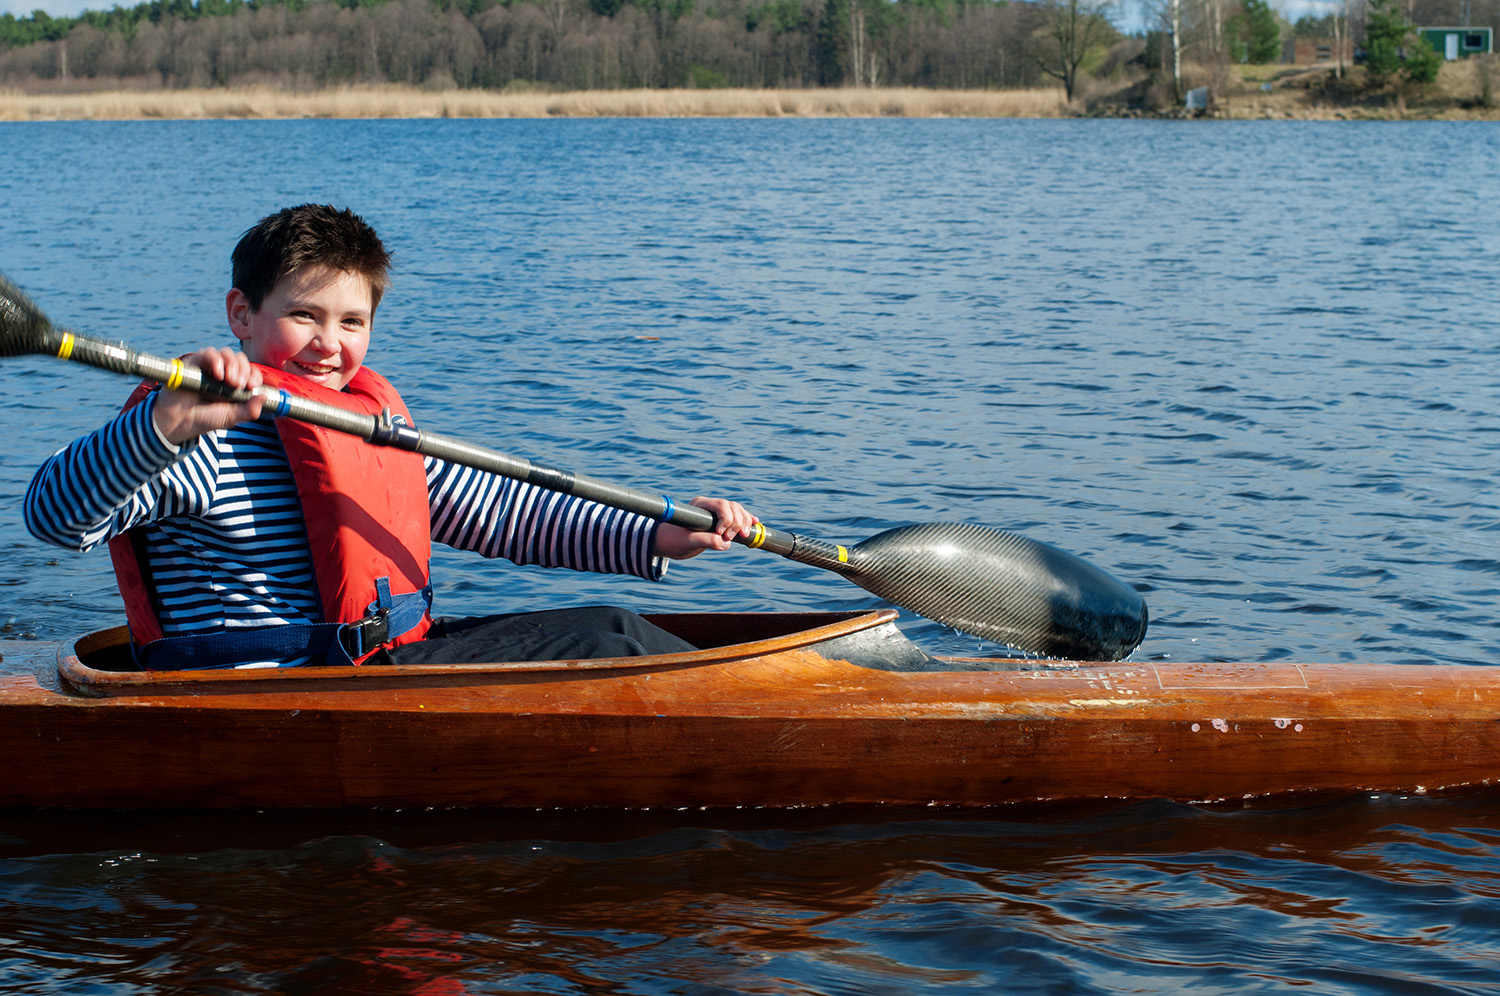 Dollarphotoclub_81755148_The-boy-rowing-in-a-kayak-on-the-river